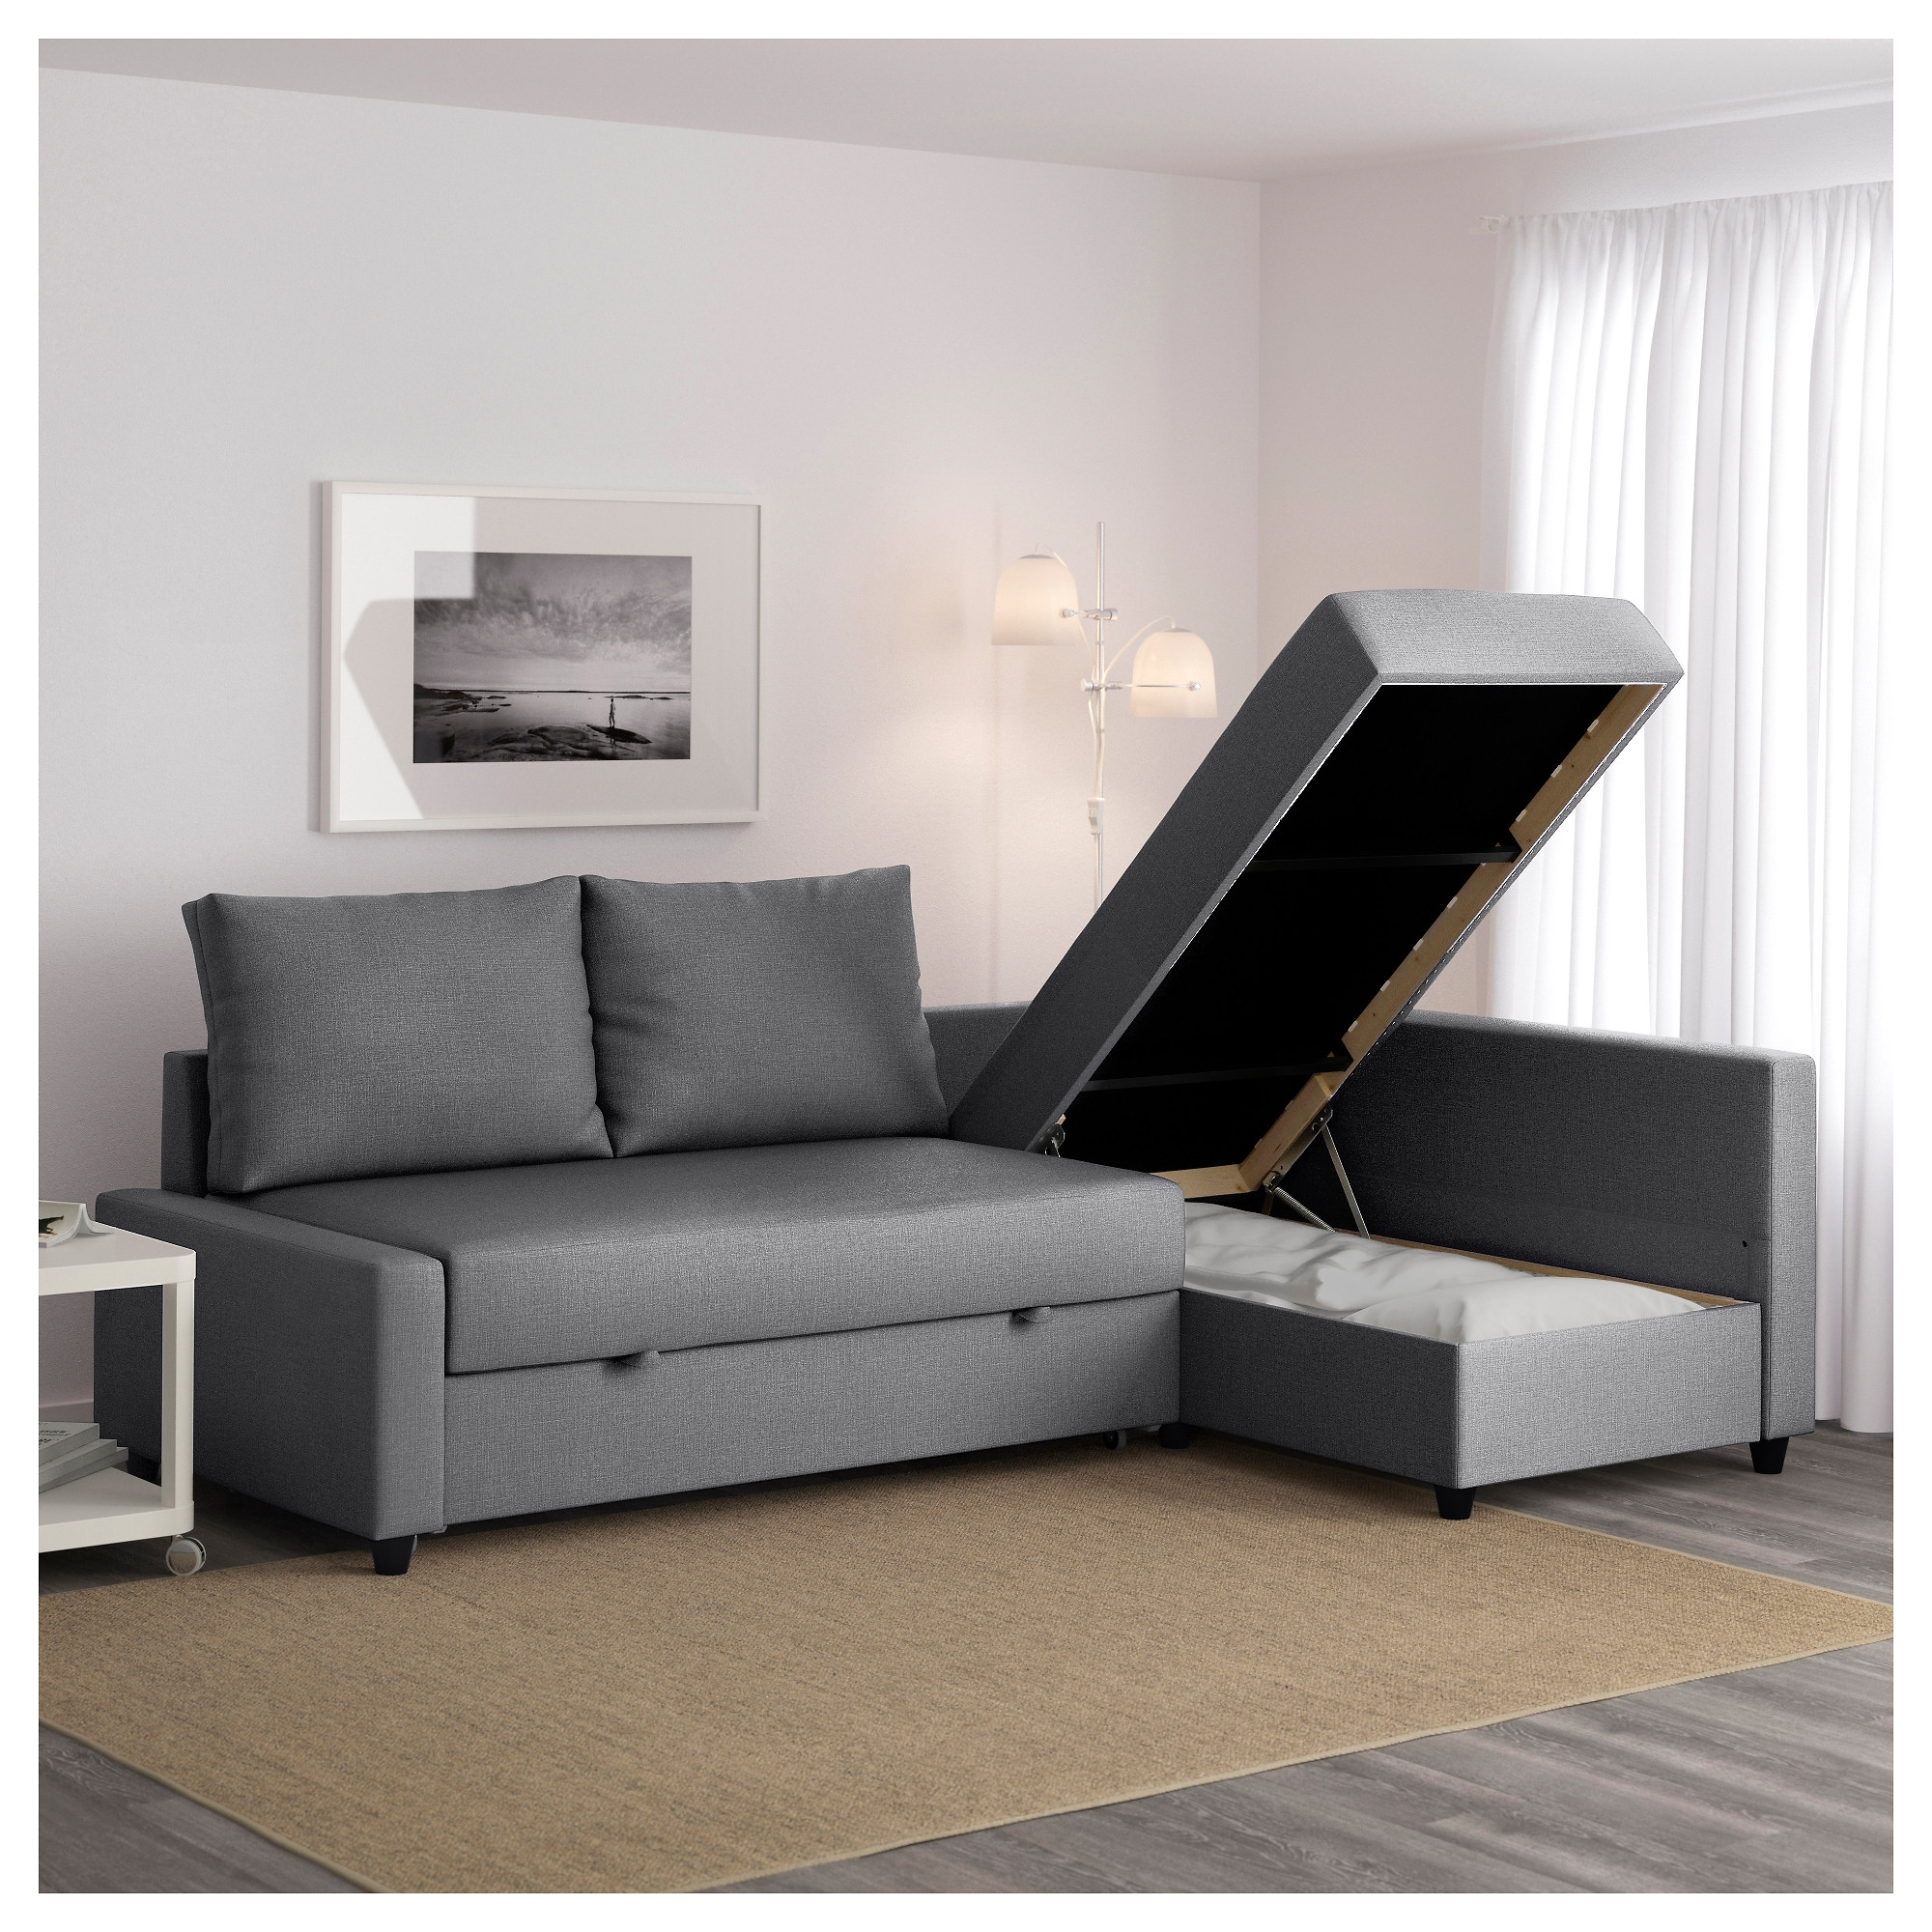 Trendy Ikea Corner Sofas With Storage With Friheten Corner Sofa Bed With Storage Skiftebo Dark Grey – Ikea (View 2 of 20)